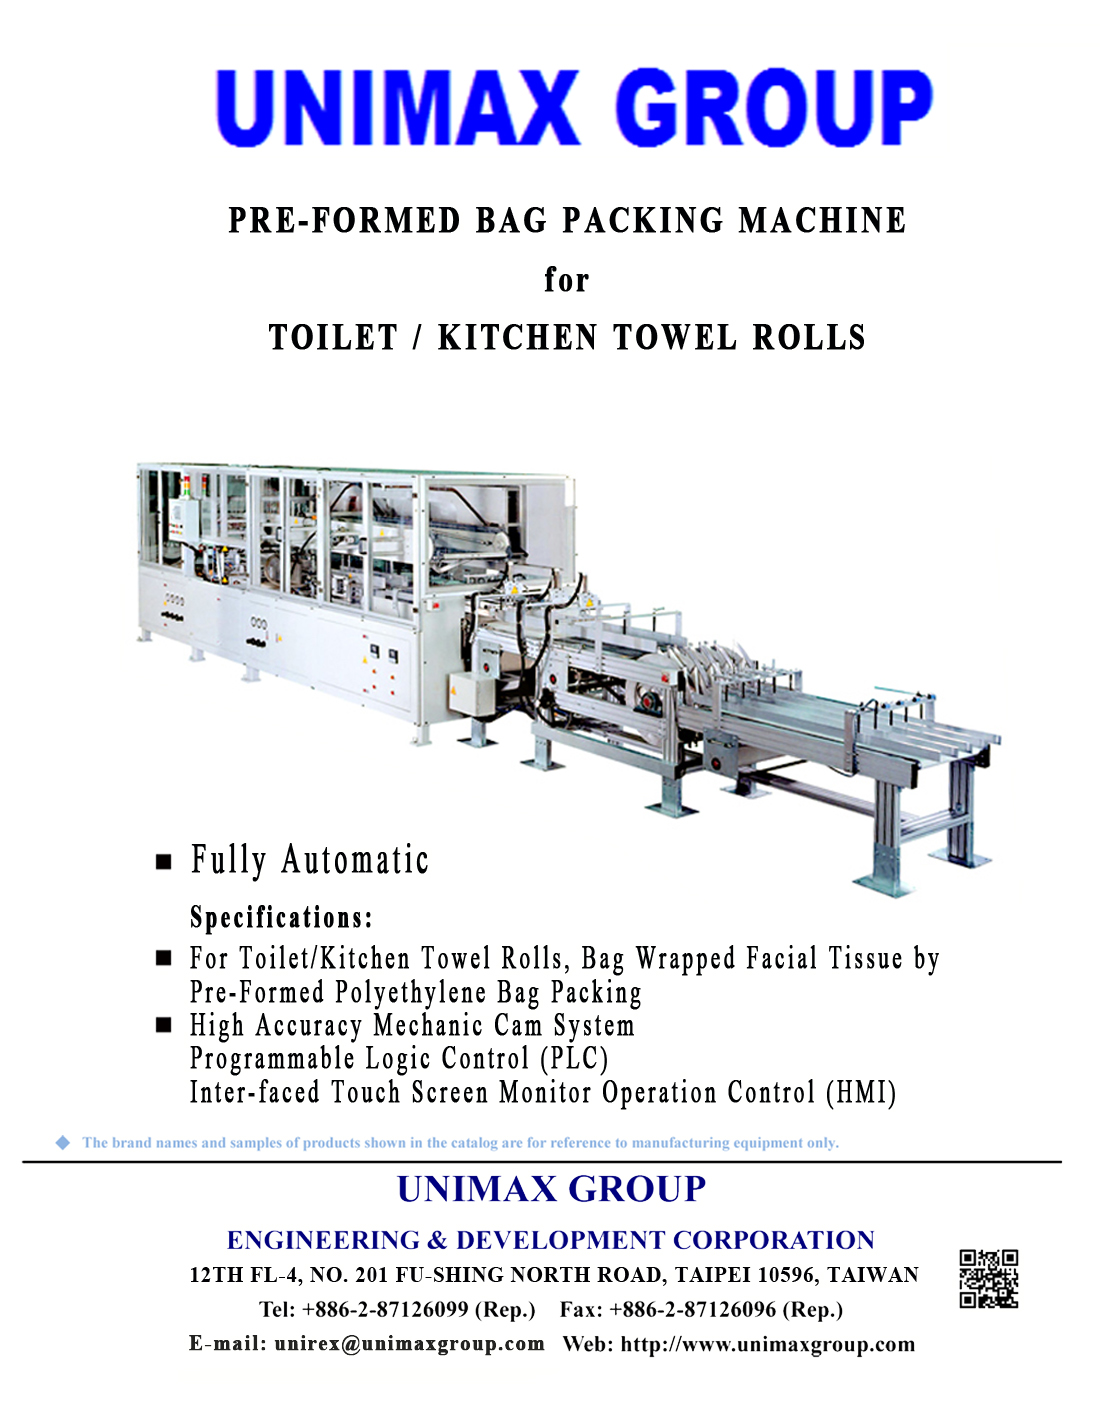 Fully Automatic Preformed Bag Packing Machine for Toilet   Kitchen Towel  Rolls Tissue Paper Packing UC 830 MB Series  15     Unimax Group  Engineering. Fully Automatic Preformed Bag Packing Machine for Toilet   Kitchen